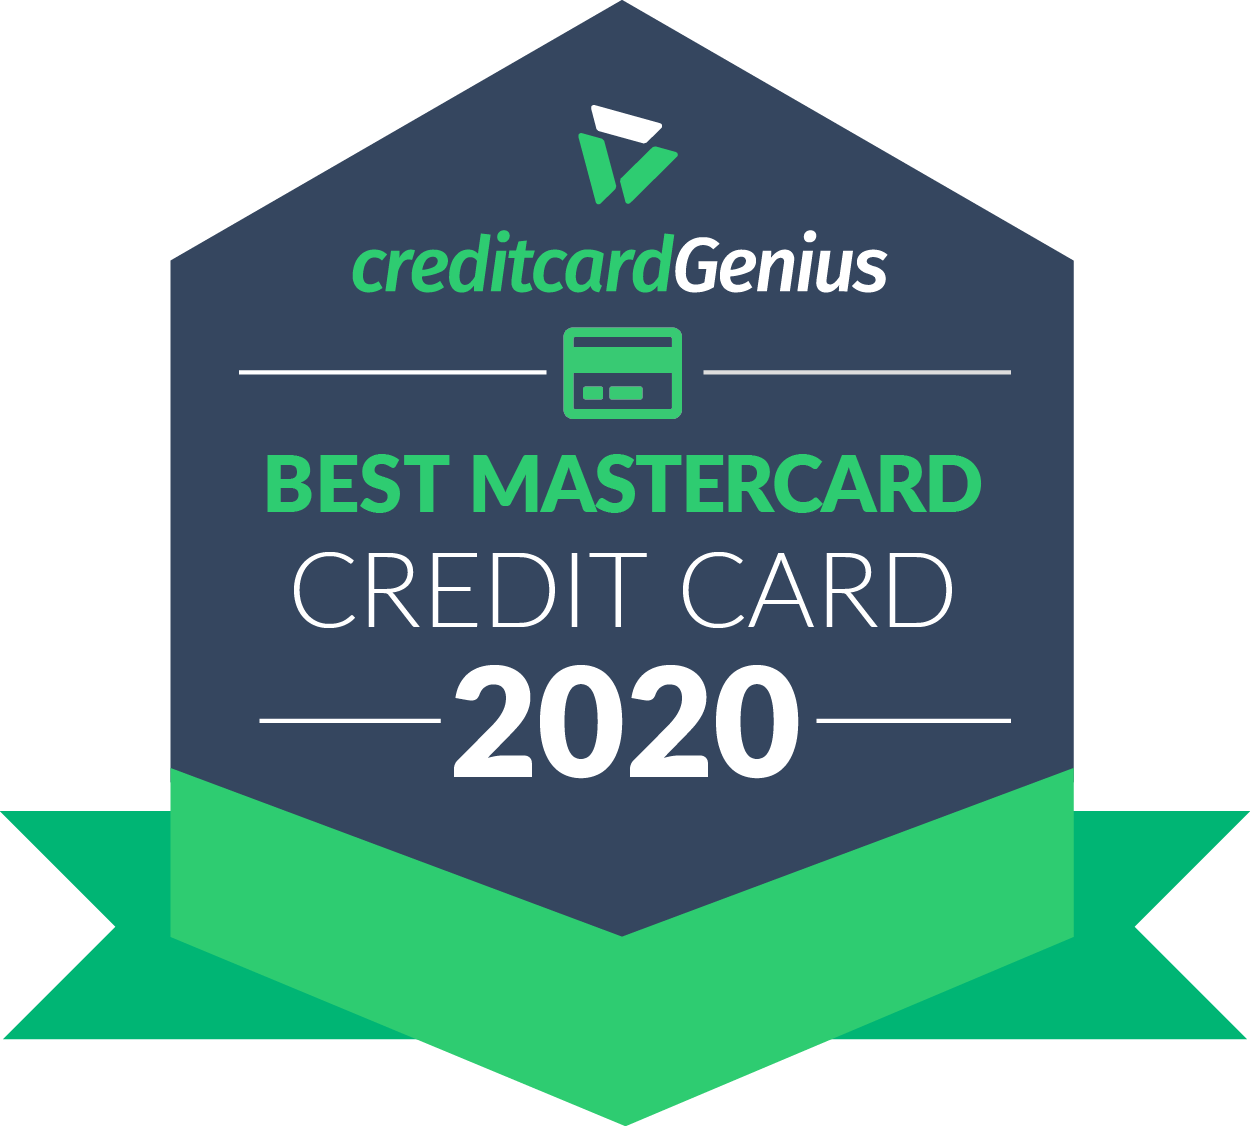 Best Mastercard credit cards in Canada for 2020 award seal